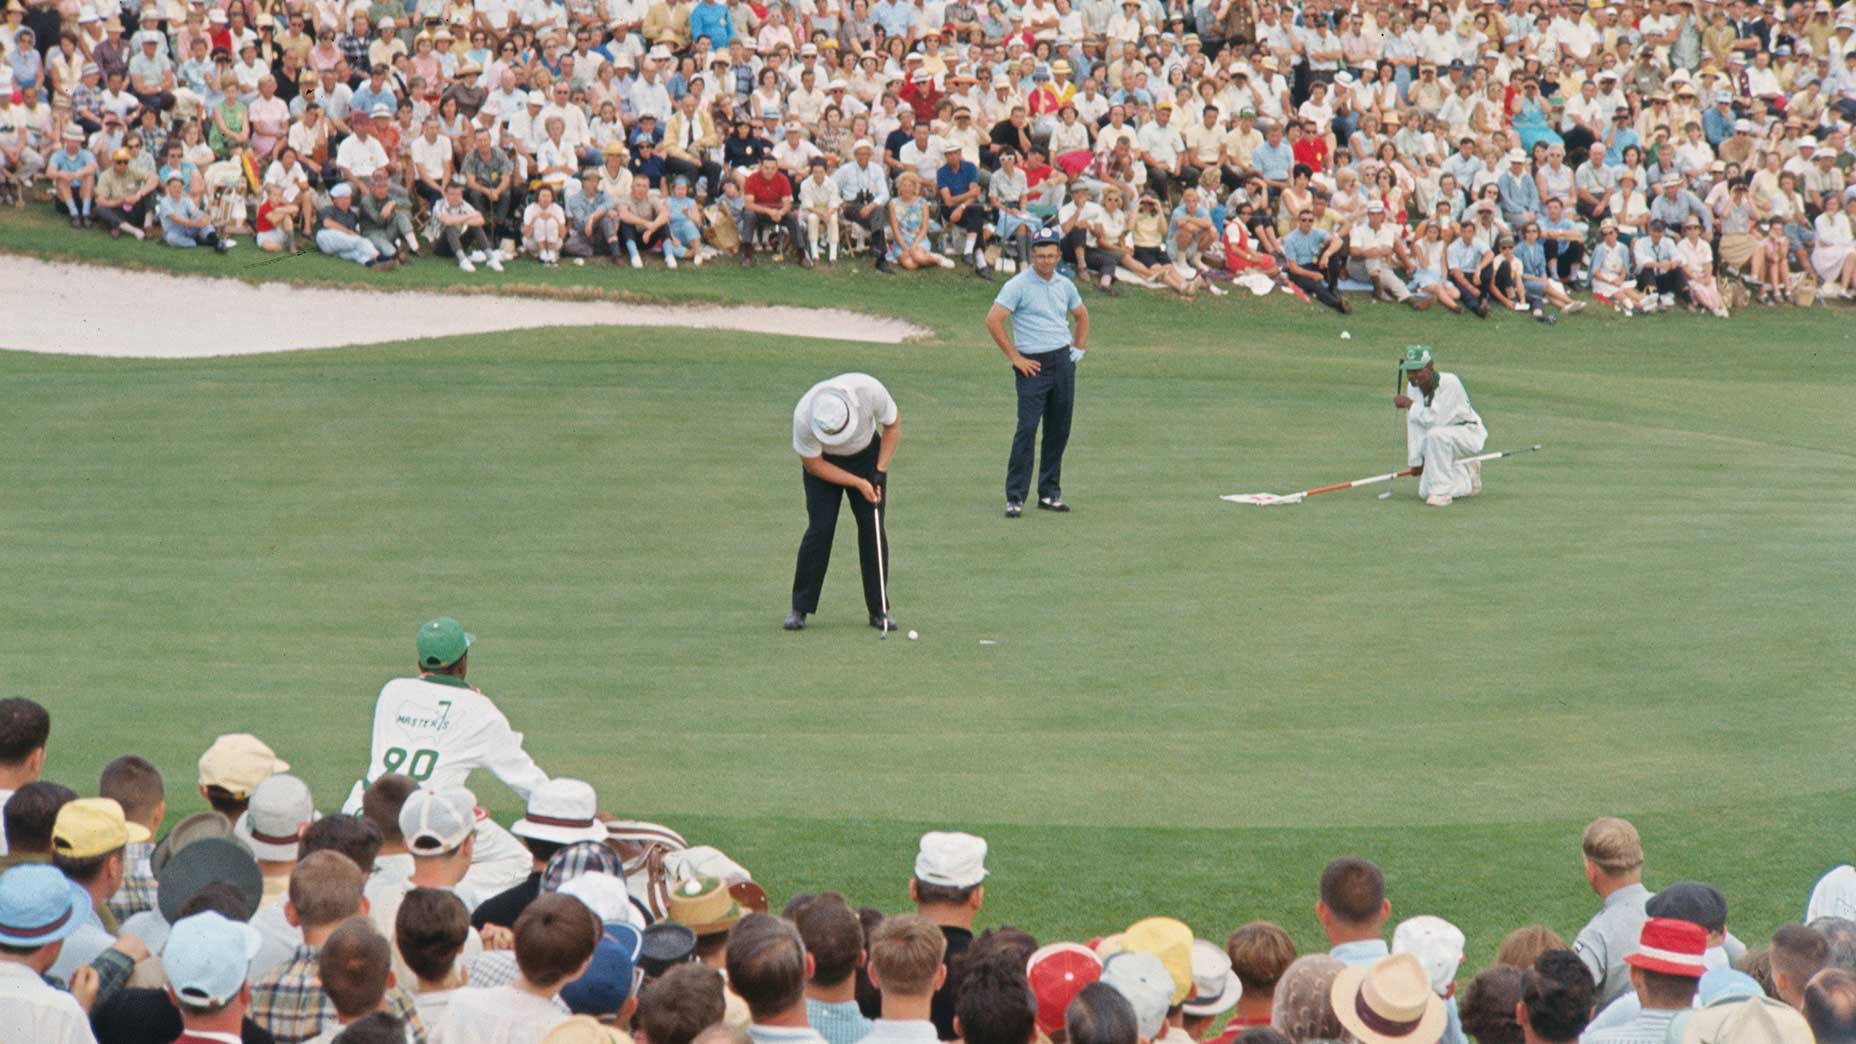 Jack Nicklaus putts at the 1965 Masters.